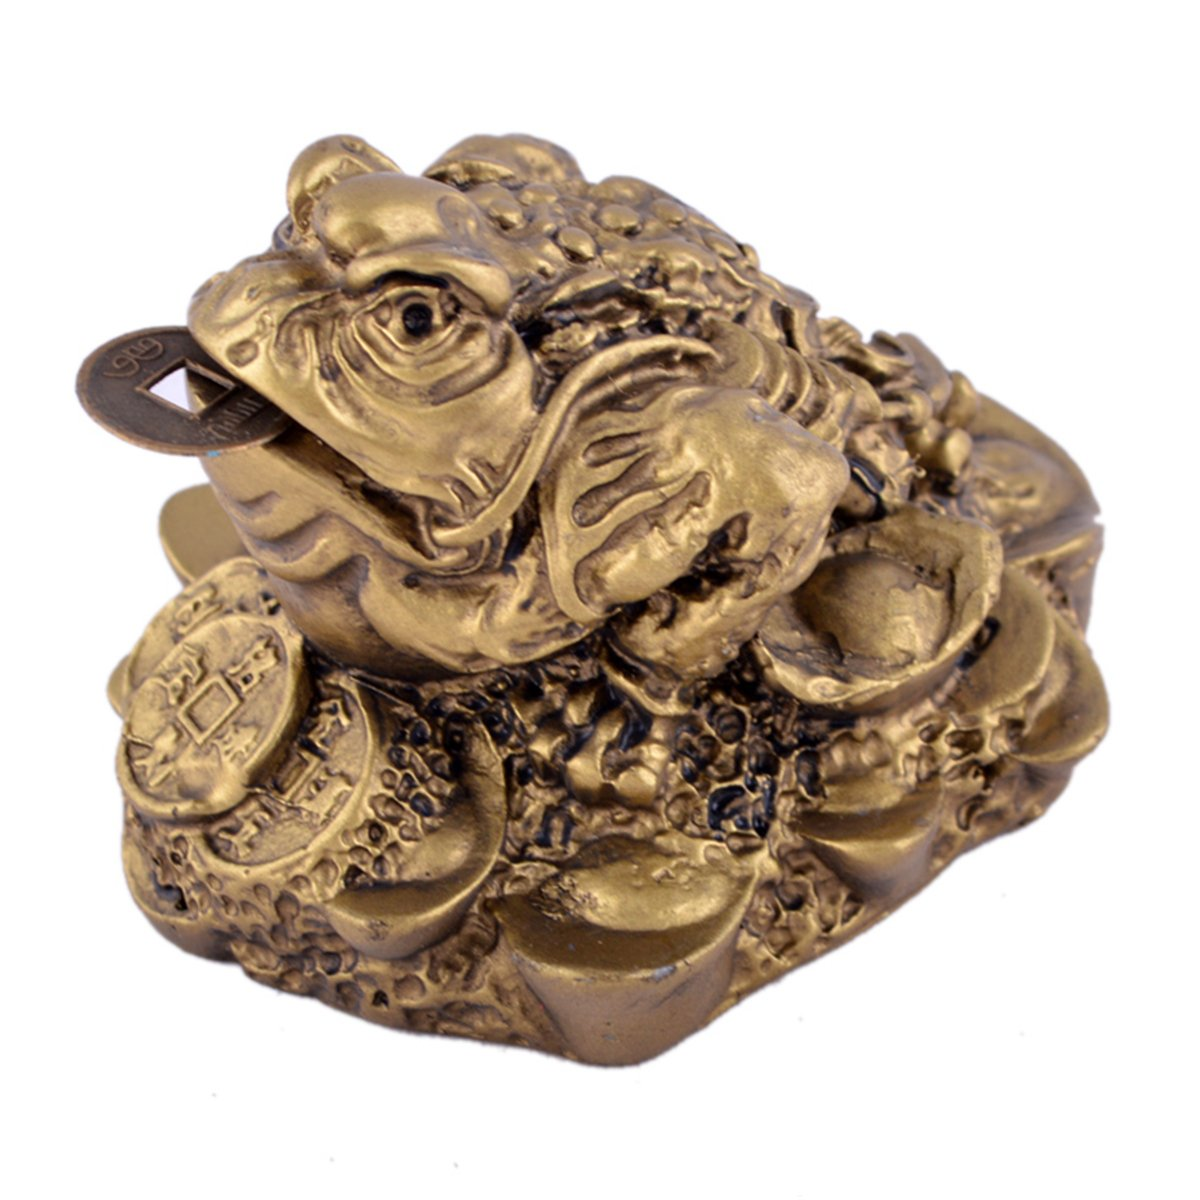 feng shui money frog three legged to attract wealth. Black Bedroom Furniture Sets. Home Design Ideas